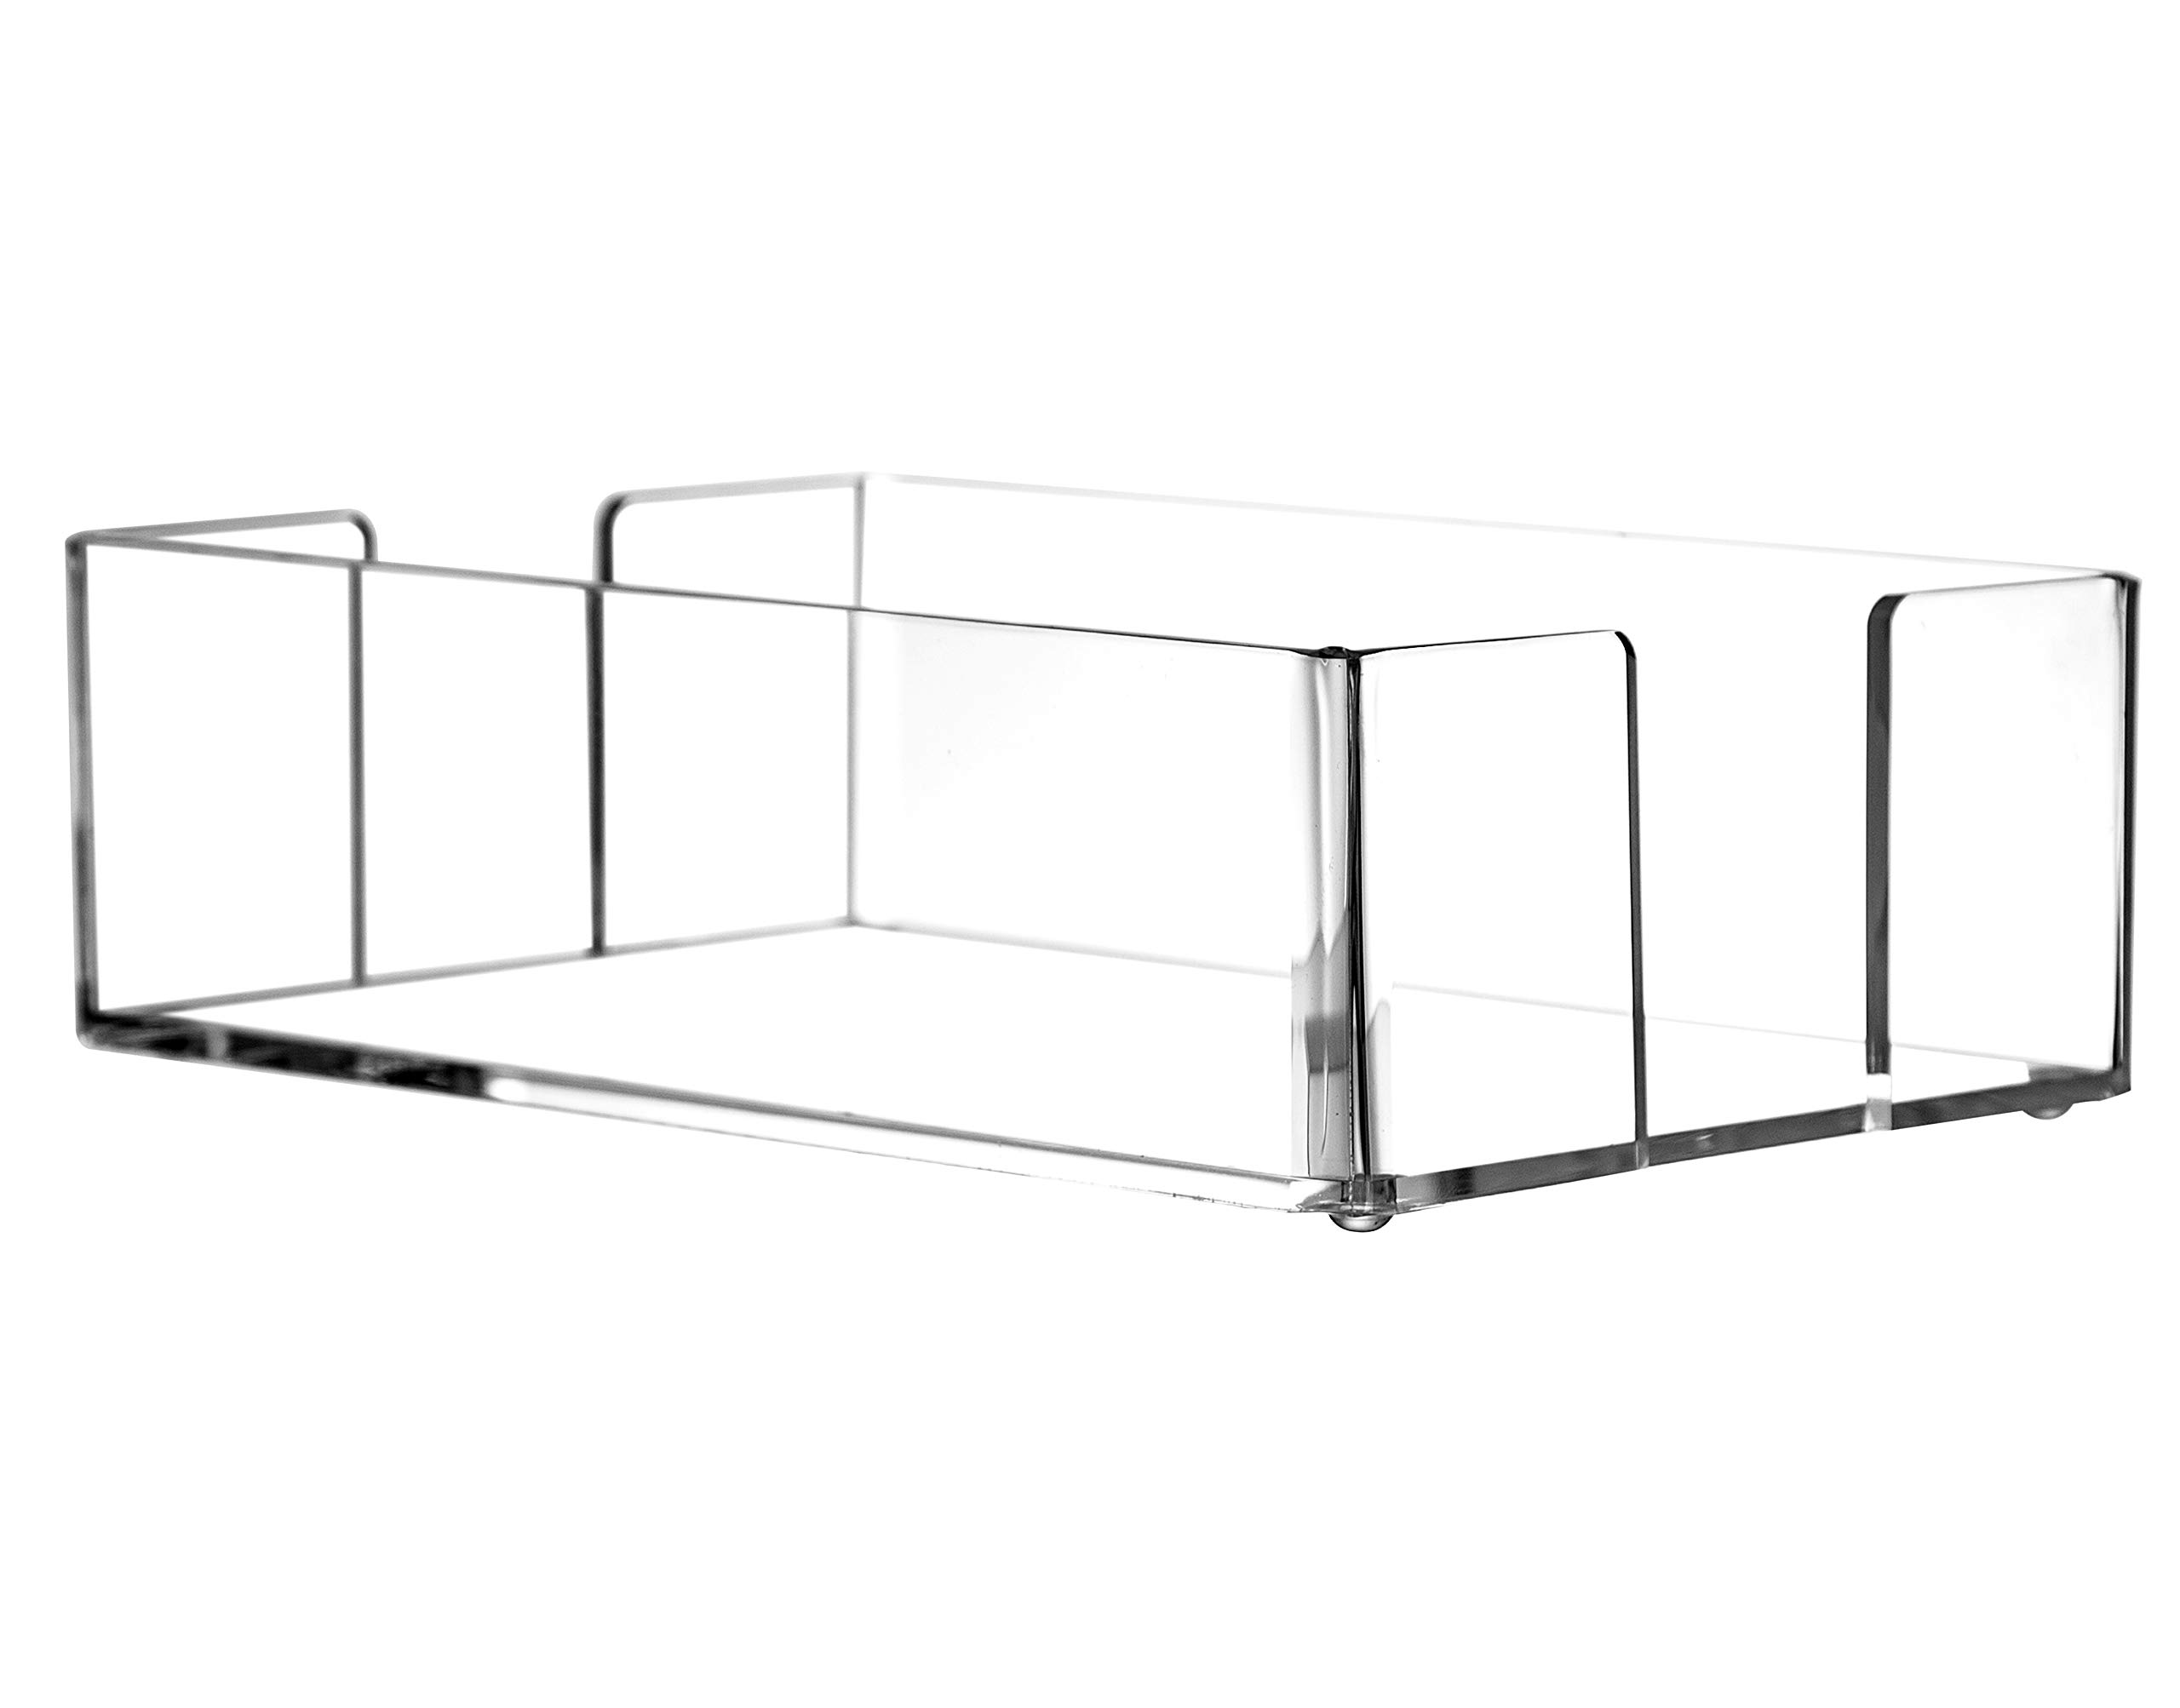 Cq acrylic Clear Napkin Holder Rack,Towel Holder in Clear,Cocktail Napkin Holder,Freestanding Tissue Dispenser For Table,9''x 5.5''x 2.5'' by Cq acrylic